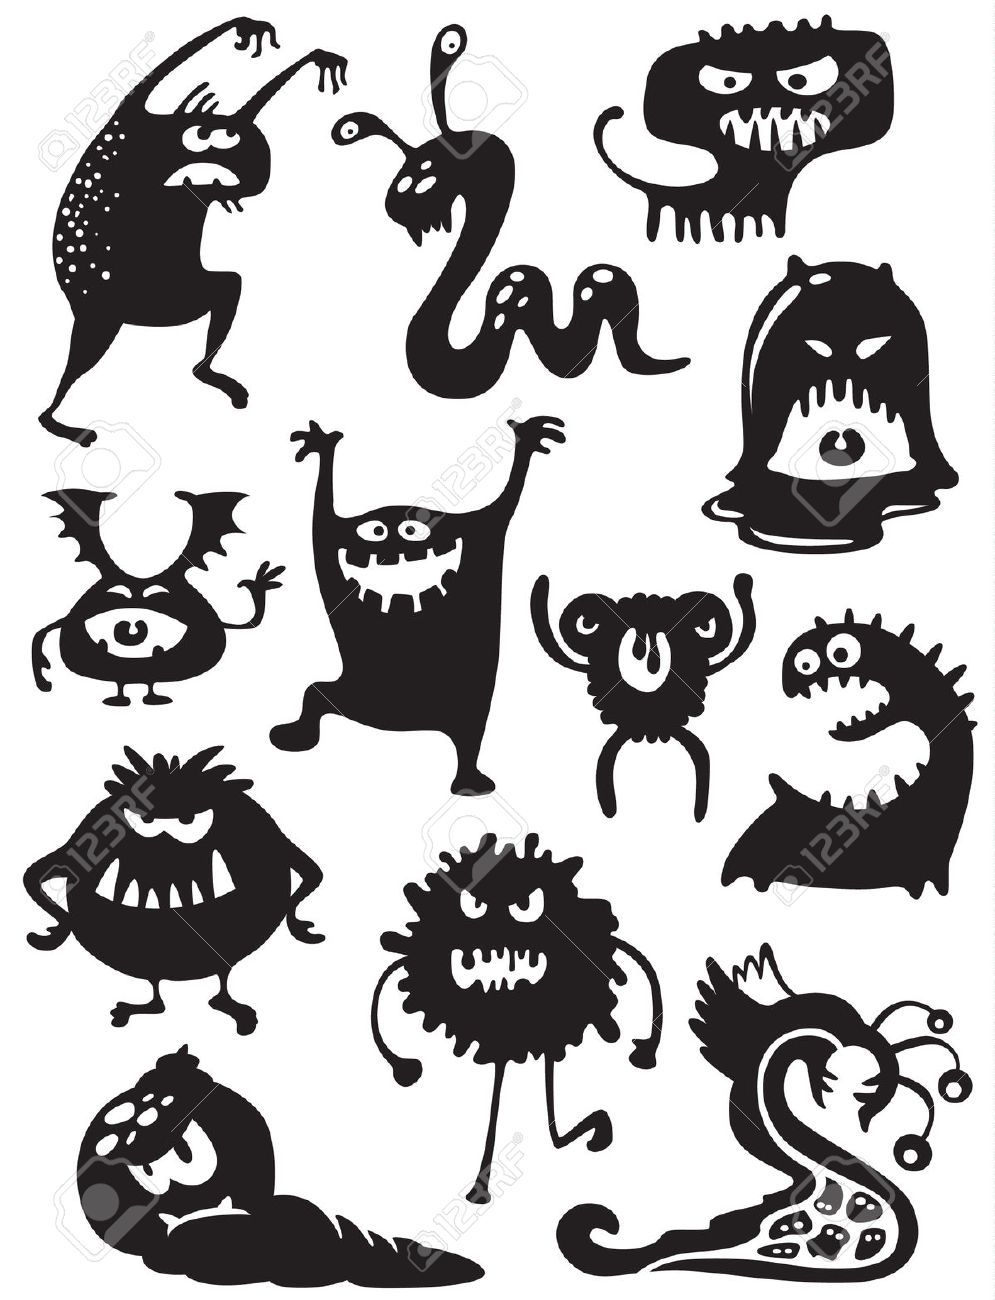 halloween monster silhouette Google Search Детский